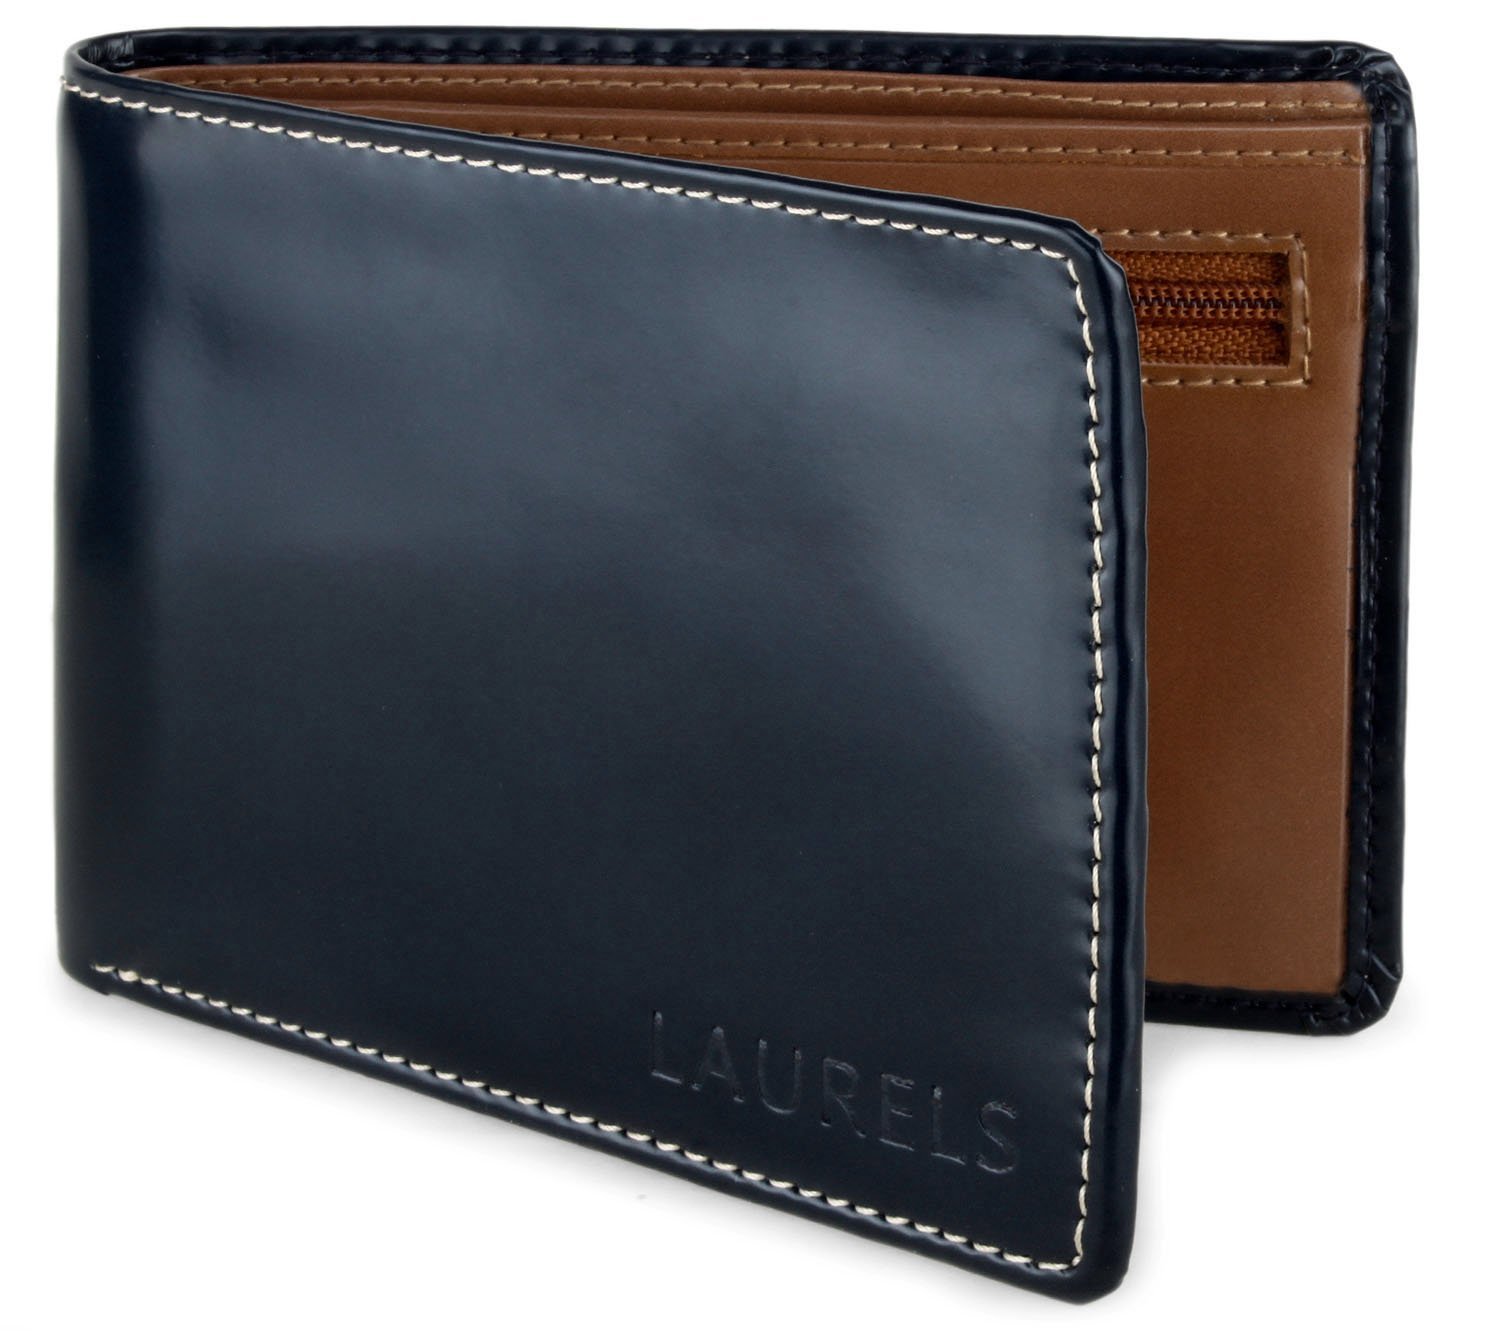 Men's Wallets on sale low price